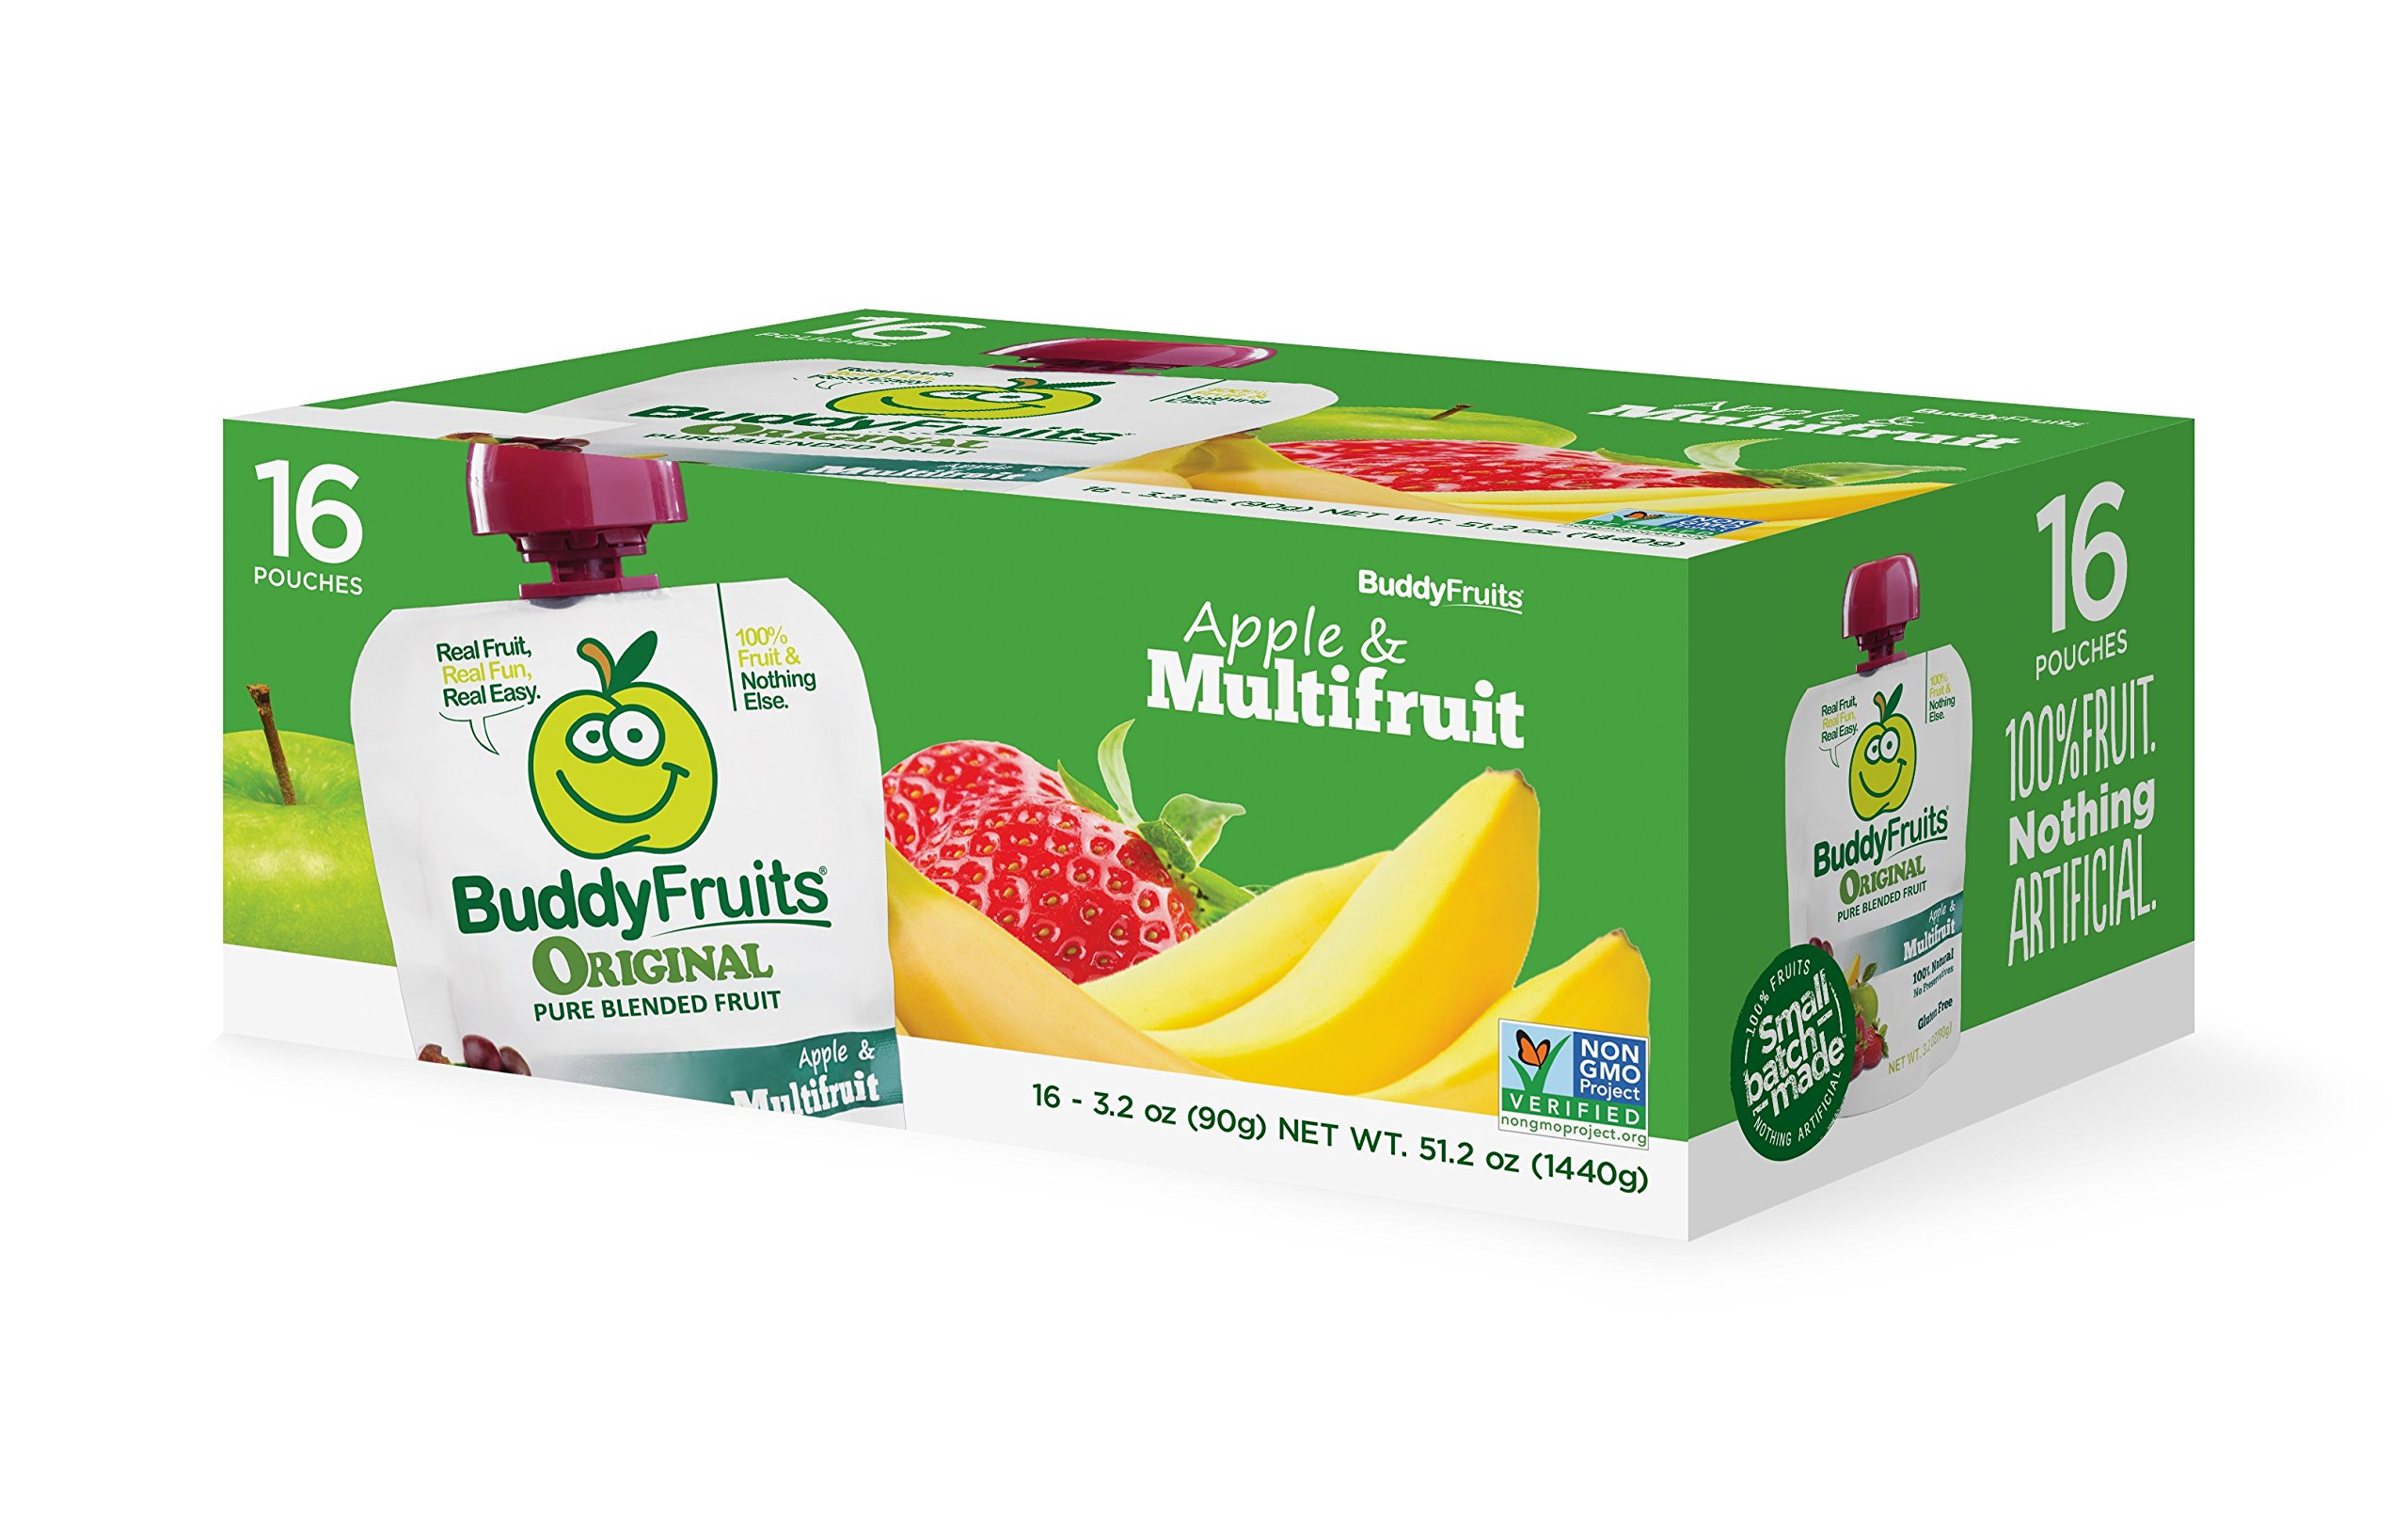 Buddy Fruits Original Blended Fruit Squeeze Snack Pouches, Apple & Multifruit, 16 Count